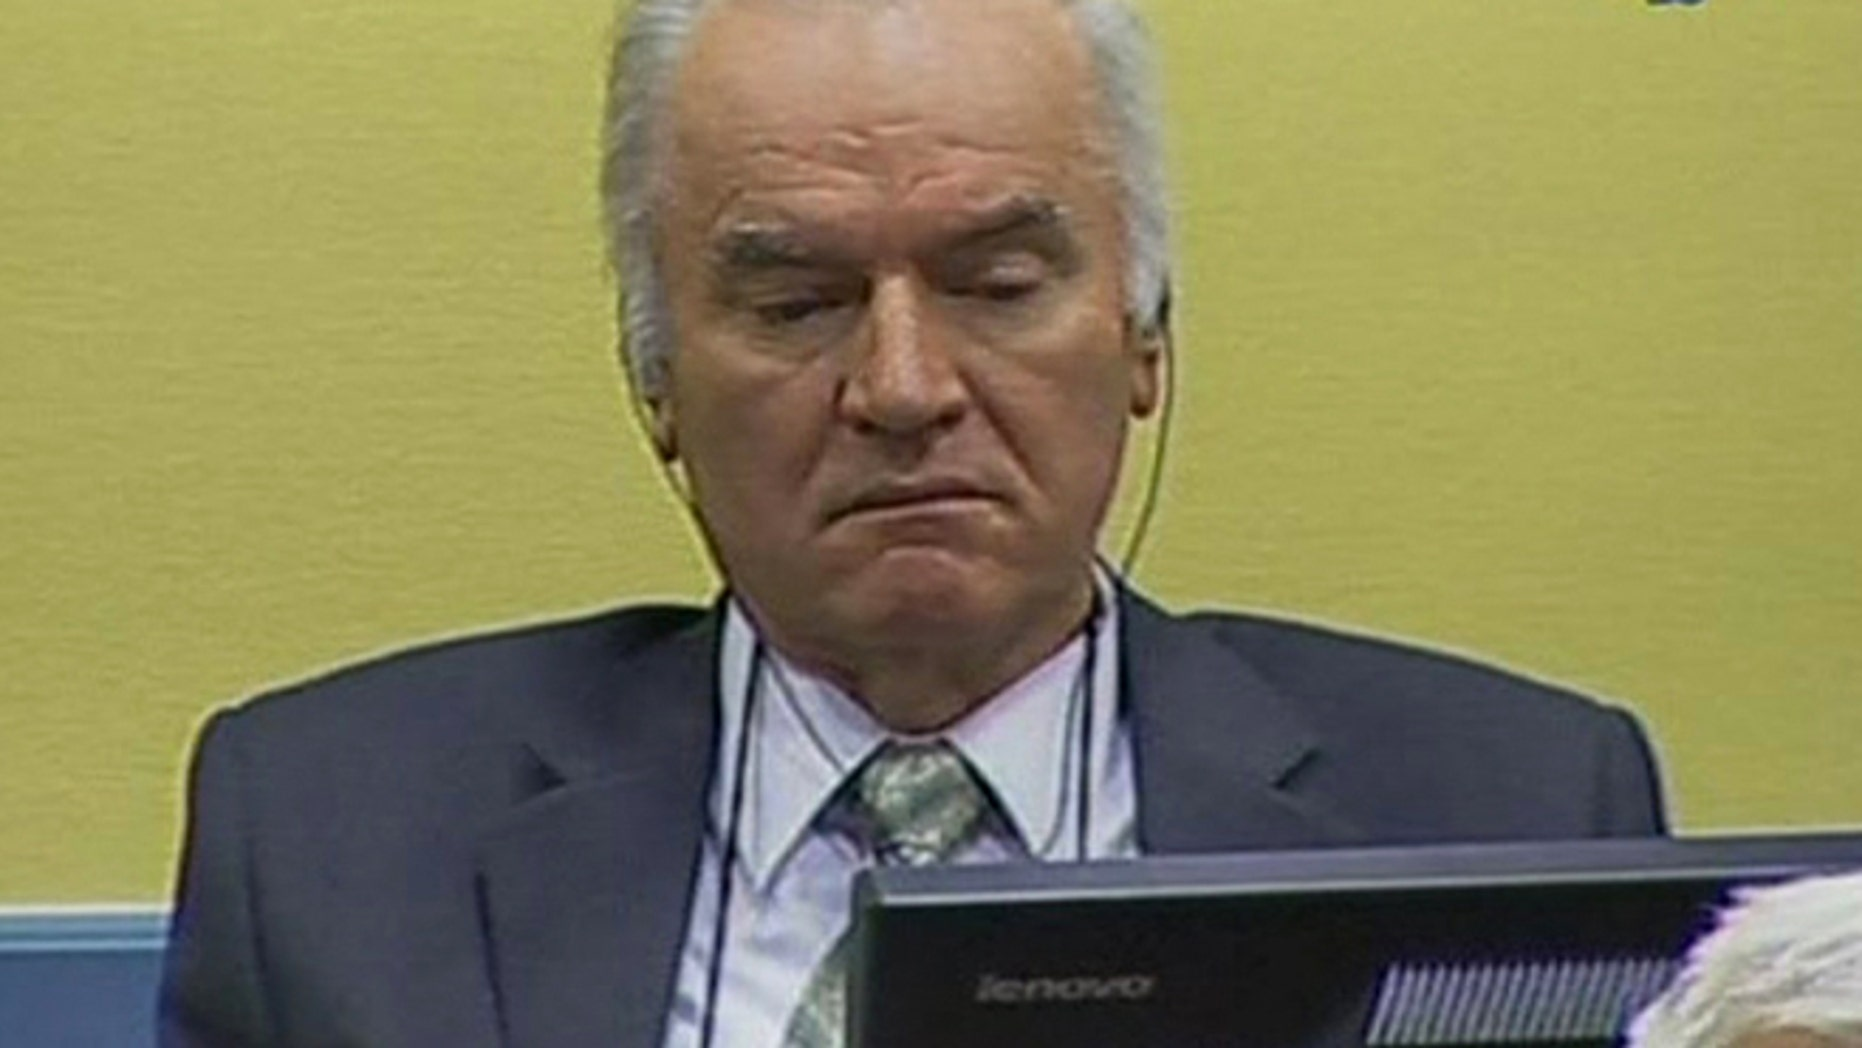 May 17, 2012: In this video image taken from ICTY video former Bosnian Serb military commander Gen. Ratko Mladic is seen on the second day of his trial at the Yugoslav war crimes tribunal in The Hague, Netherlands.